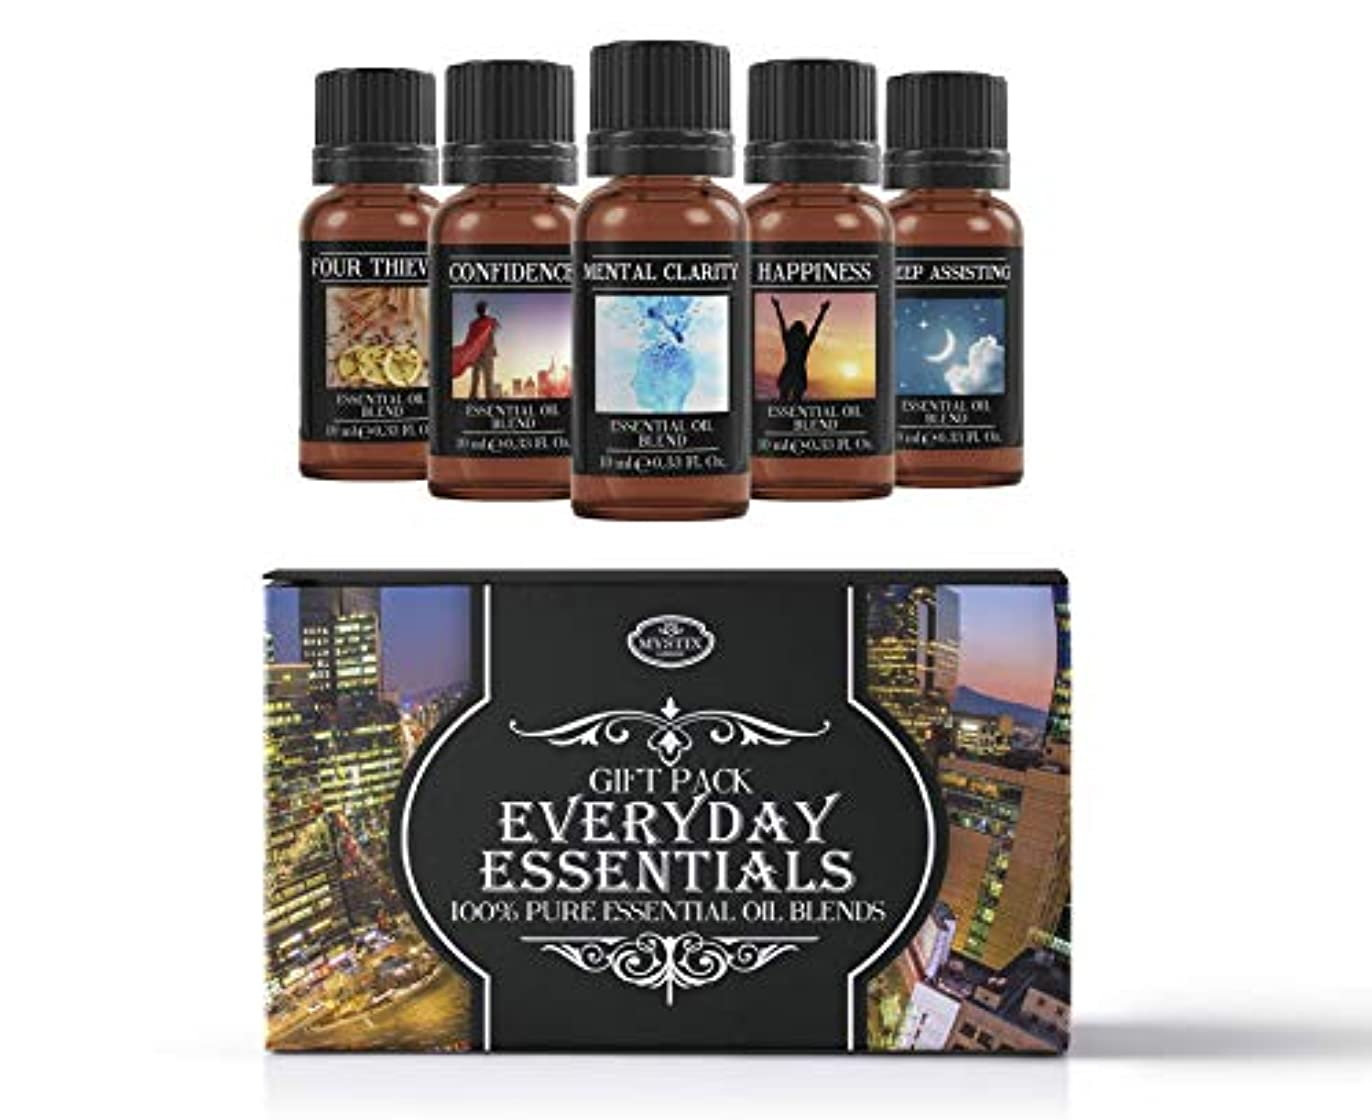 忘れられない彼女自身爆風Everyday Essentials | Essential Oil Blend Gift Pack | Confidence, Four Thieves, Happiness, Mental Clarity, Sleep...